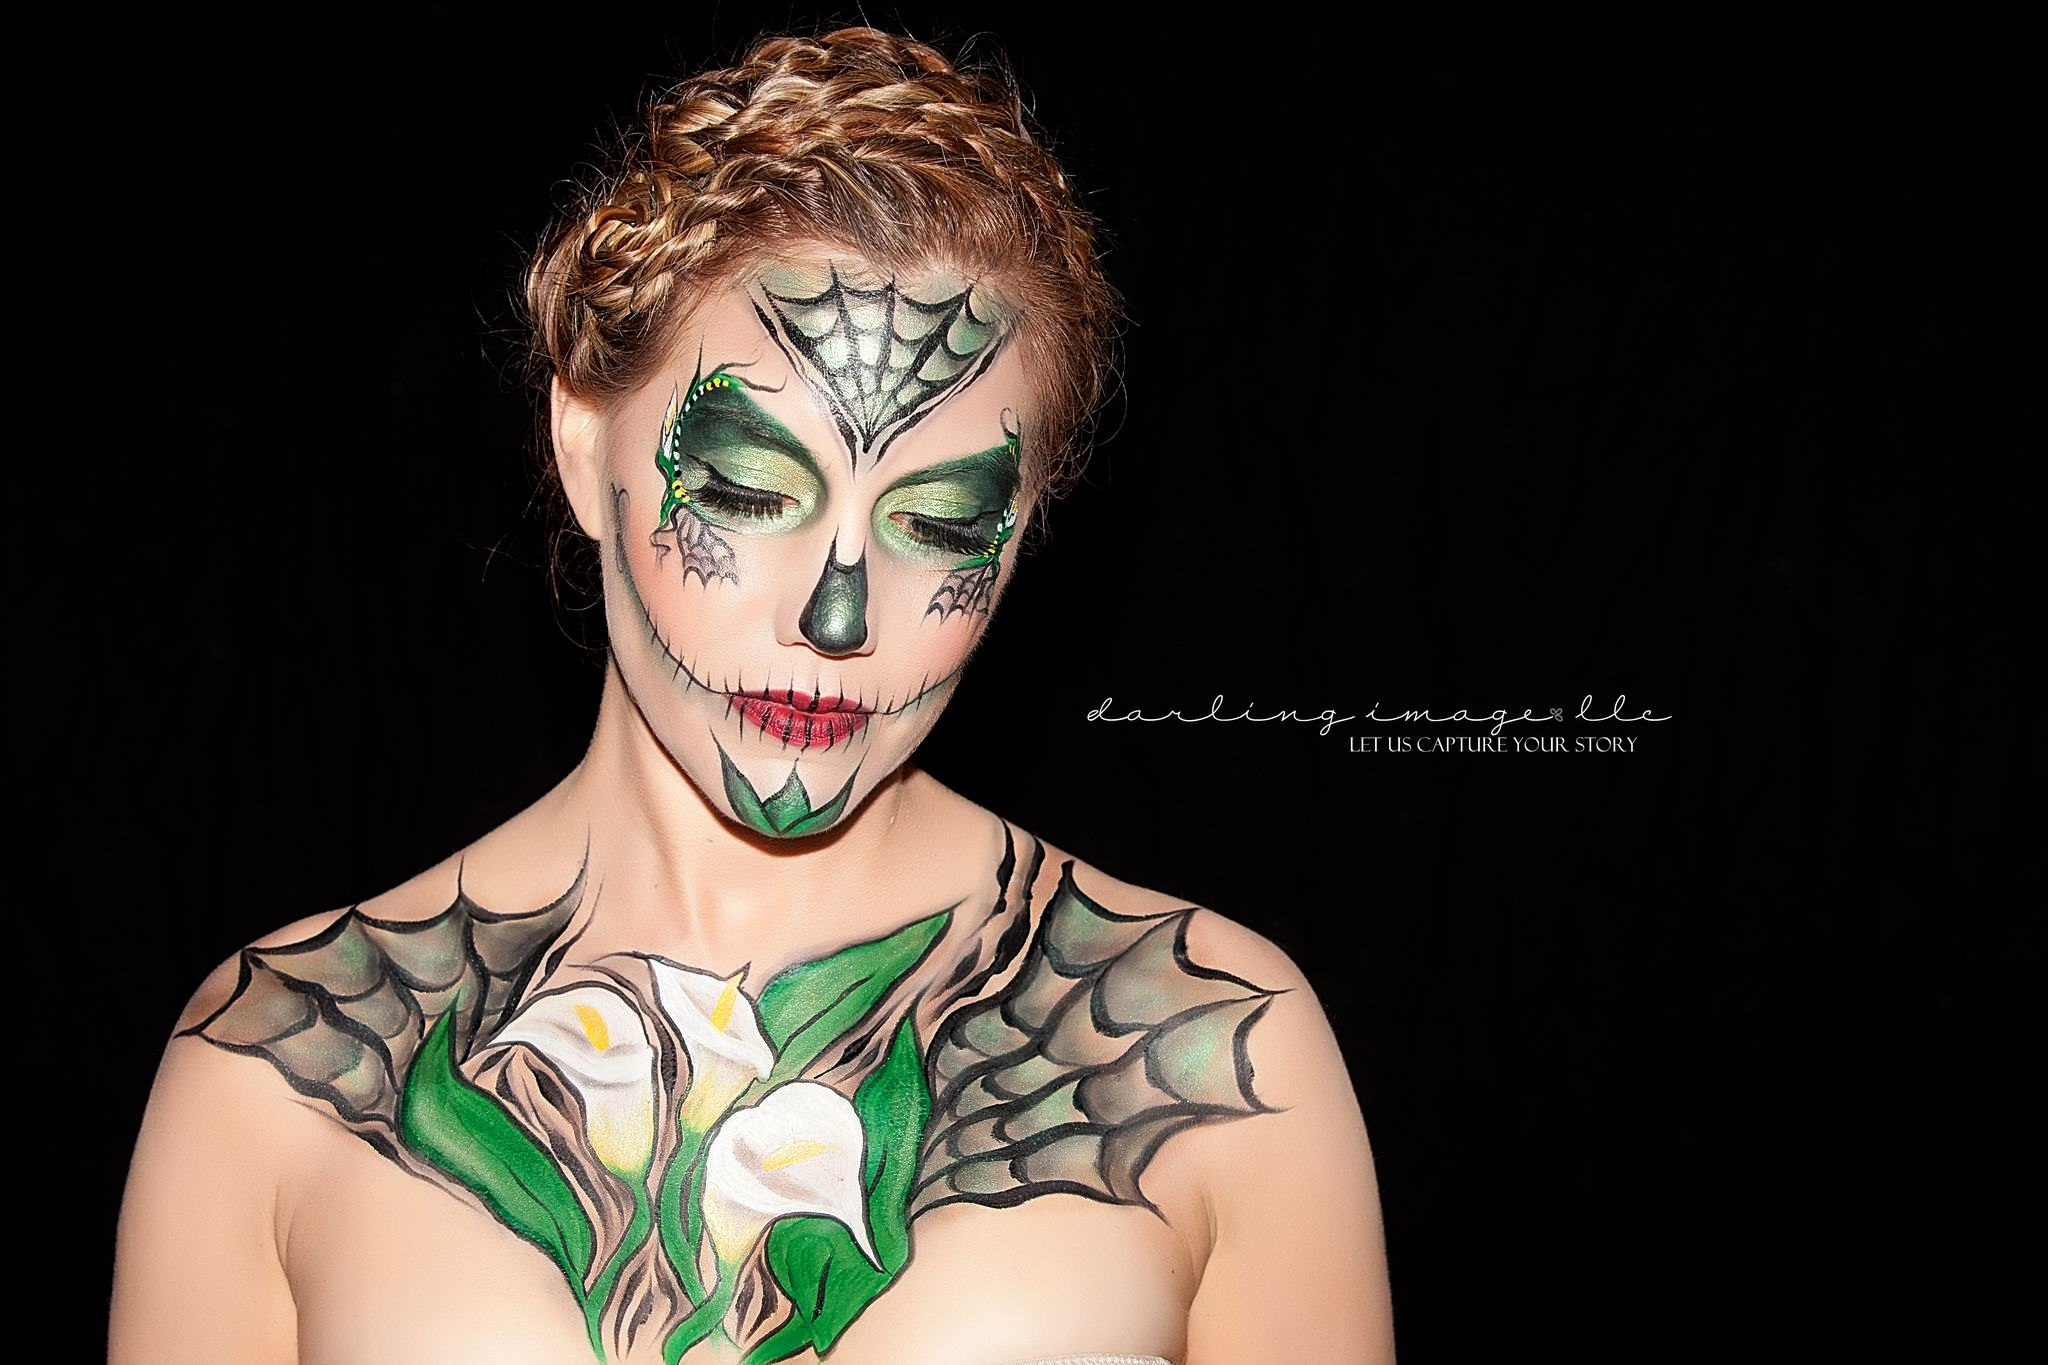 Sugar+skull+by+shawna+d.jpg